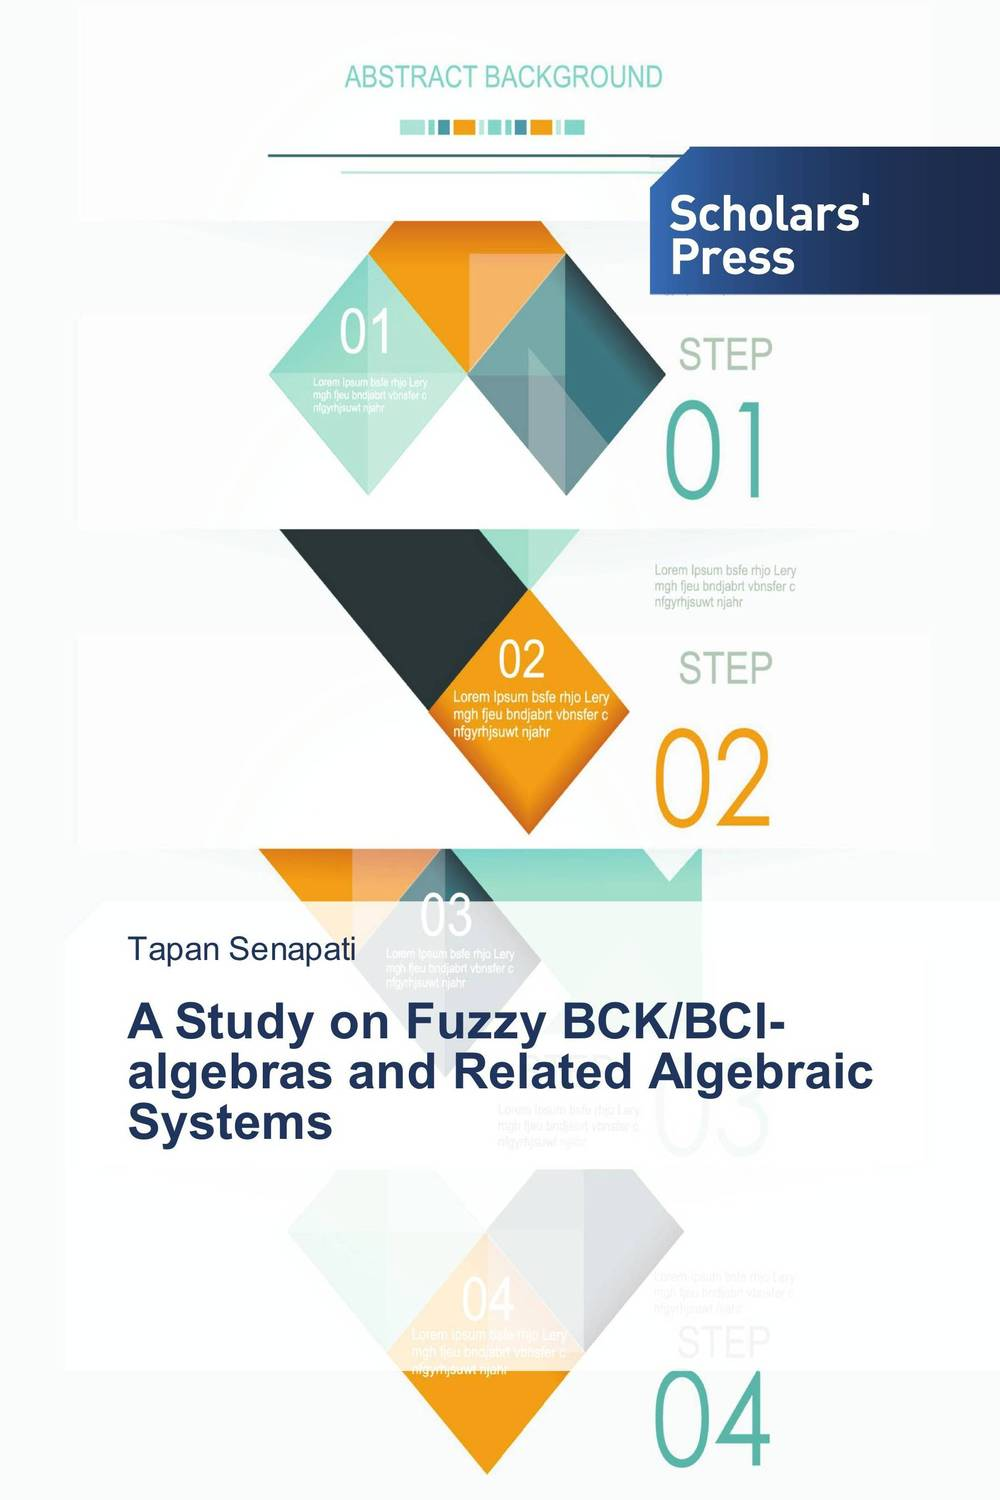 A Study on Fuzzy BCK/BCI-algebras and Related Algebraic Systems module amenability of banach algebras